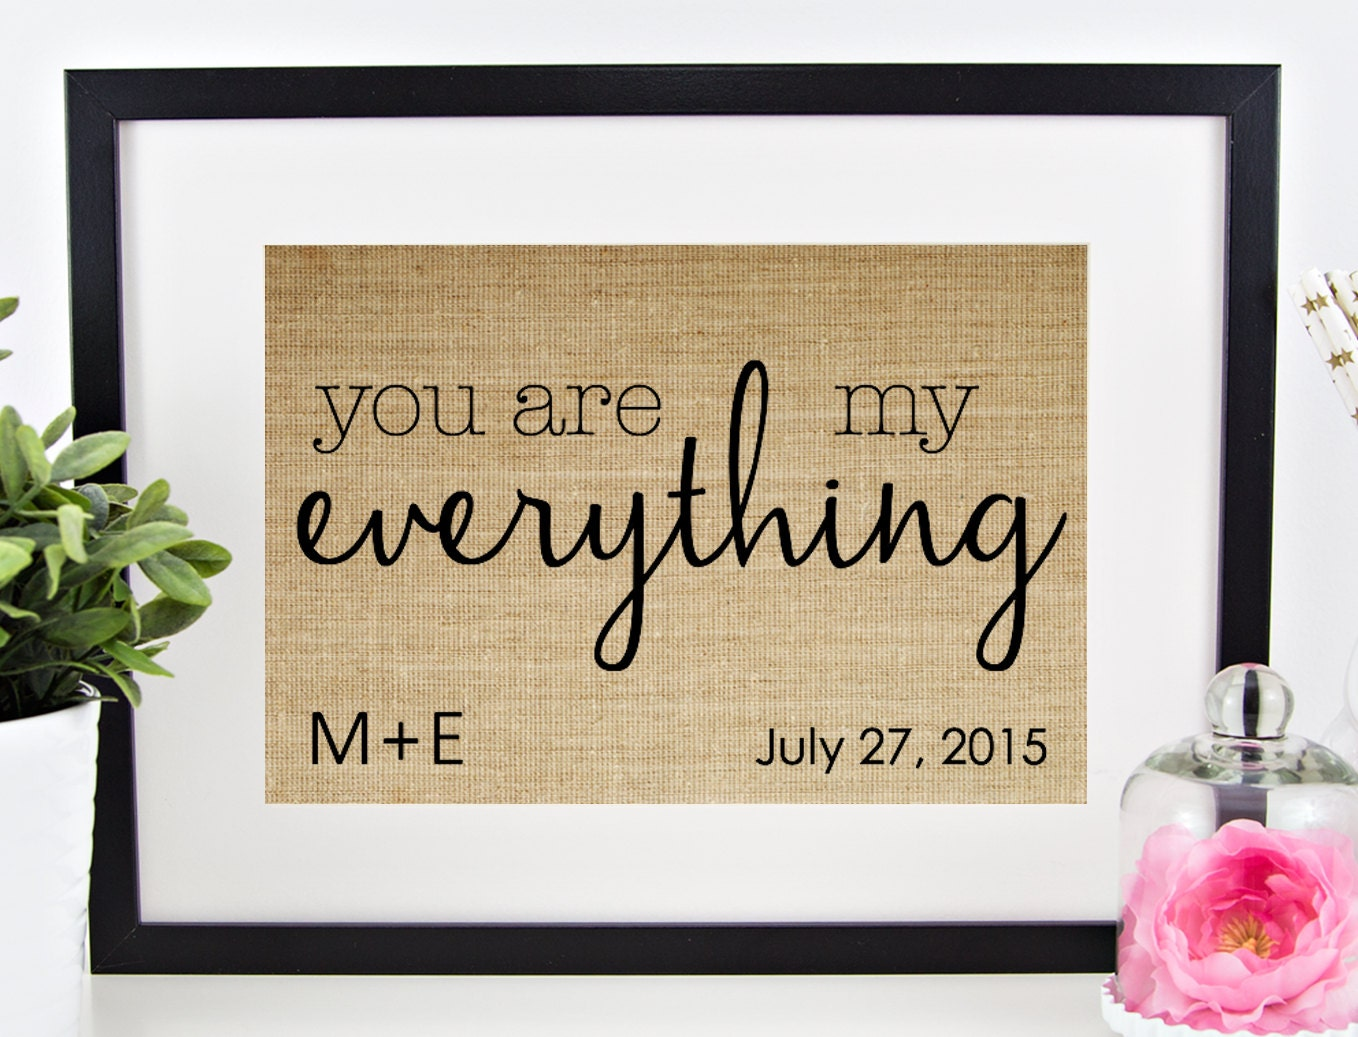 Personalized Wedding Gifts For Couples: Bridal Shower Gift Personalized Wedding Gift For Couple